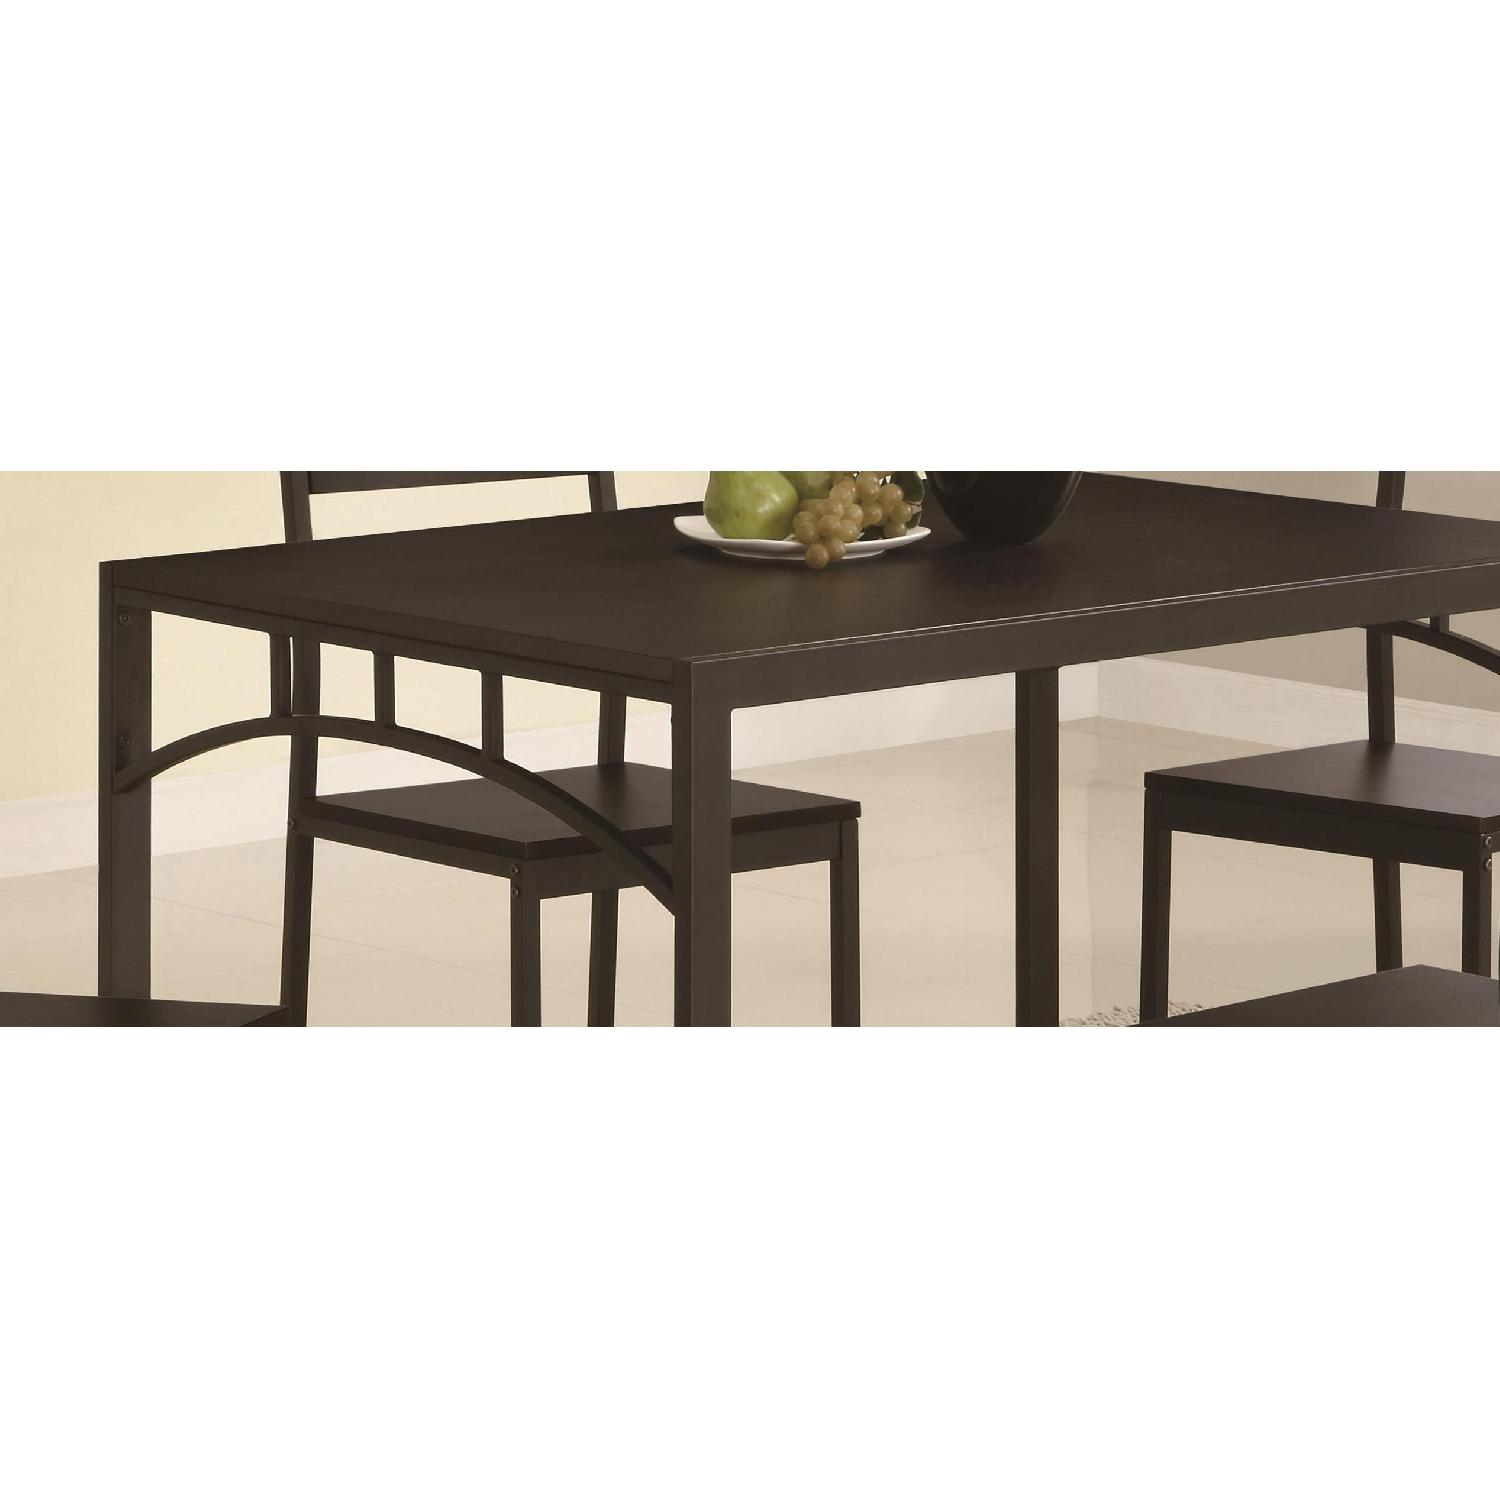 5-Piece Simple Chic Dining Set w/ Metal Frame & Wood Top - image-2